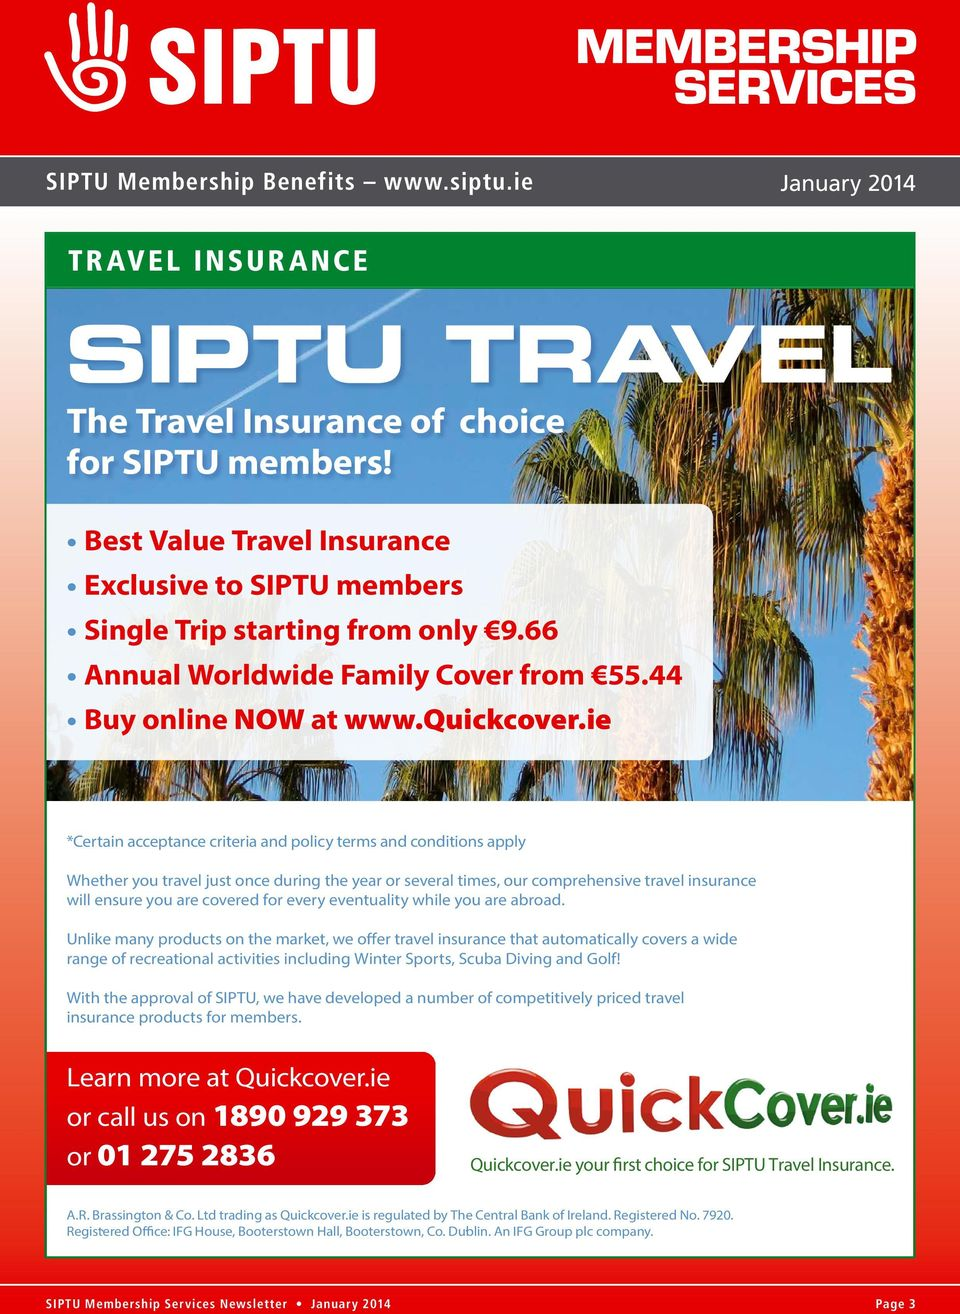 ie *Certain acceptance criteria and policy terms and conditions apply Whether you travel just once during the year or several times, our comprehensive travel insurance will ensure you are covered for